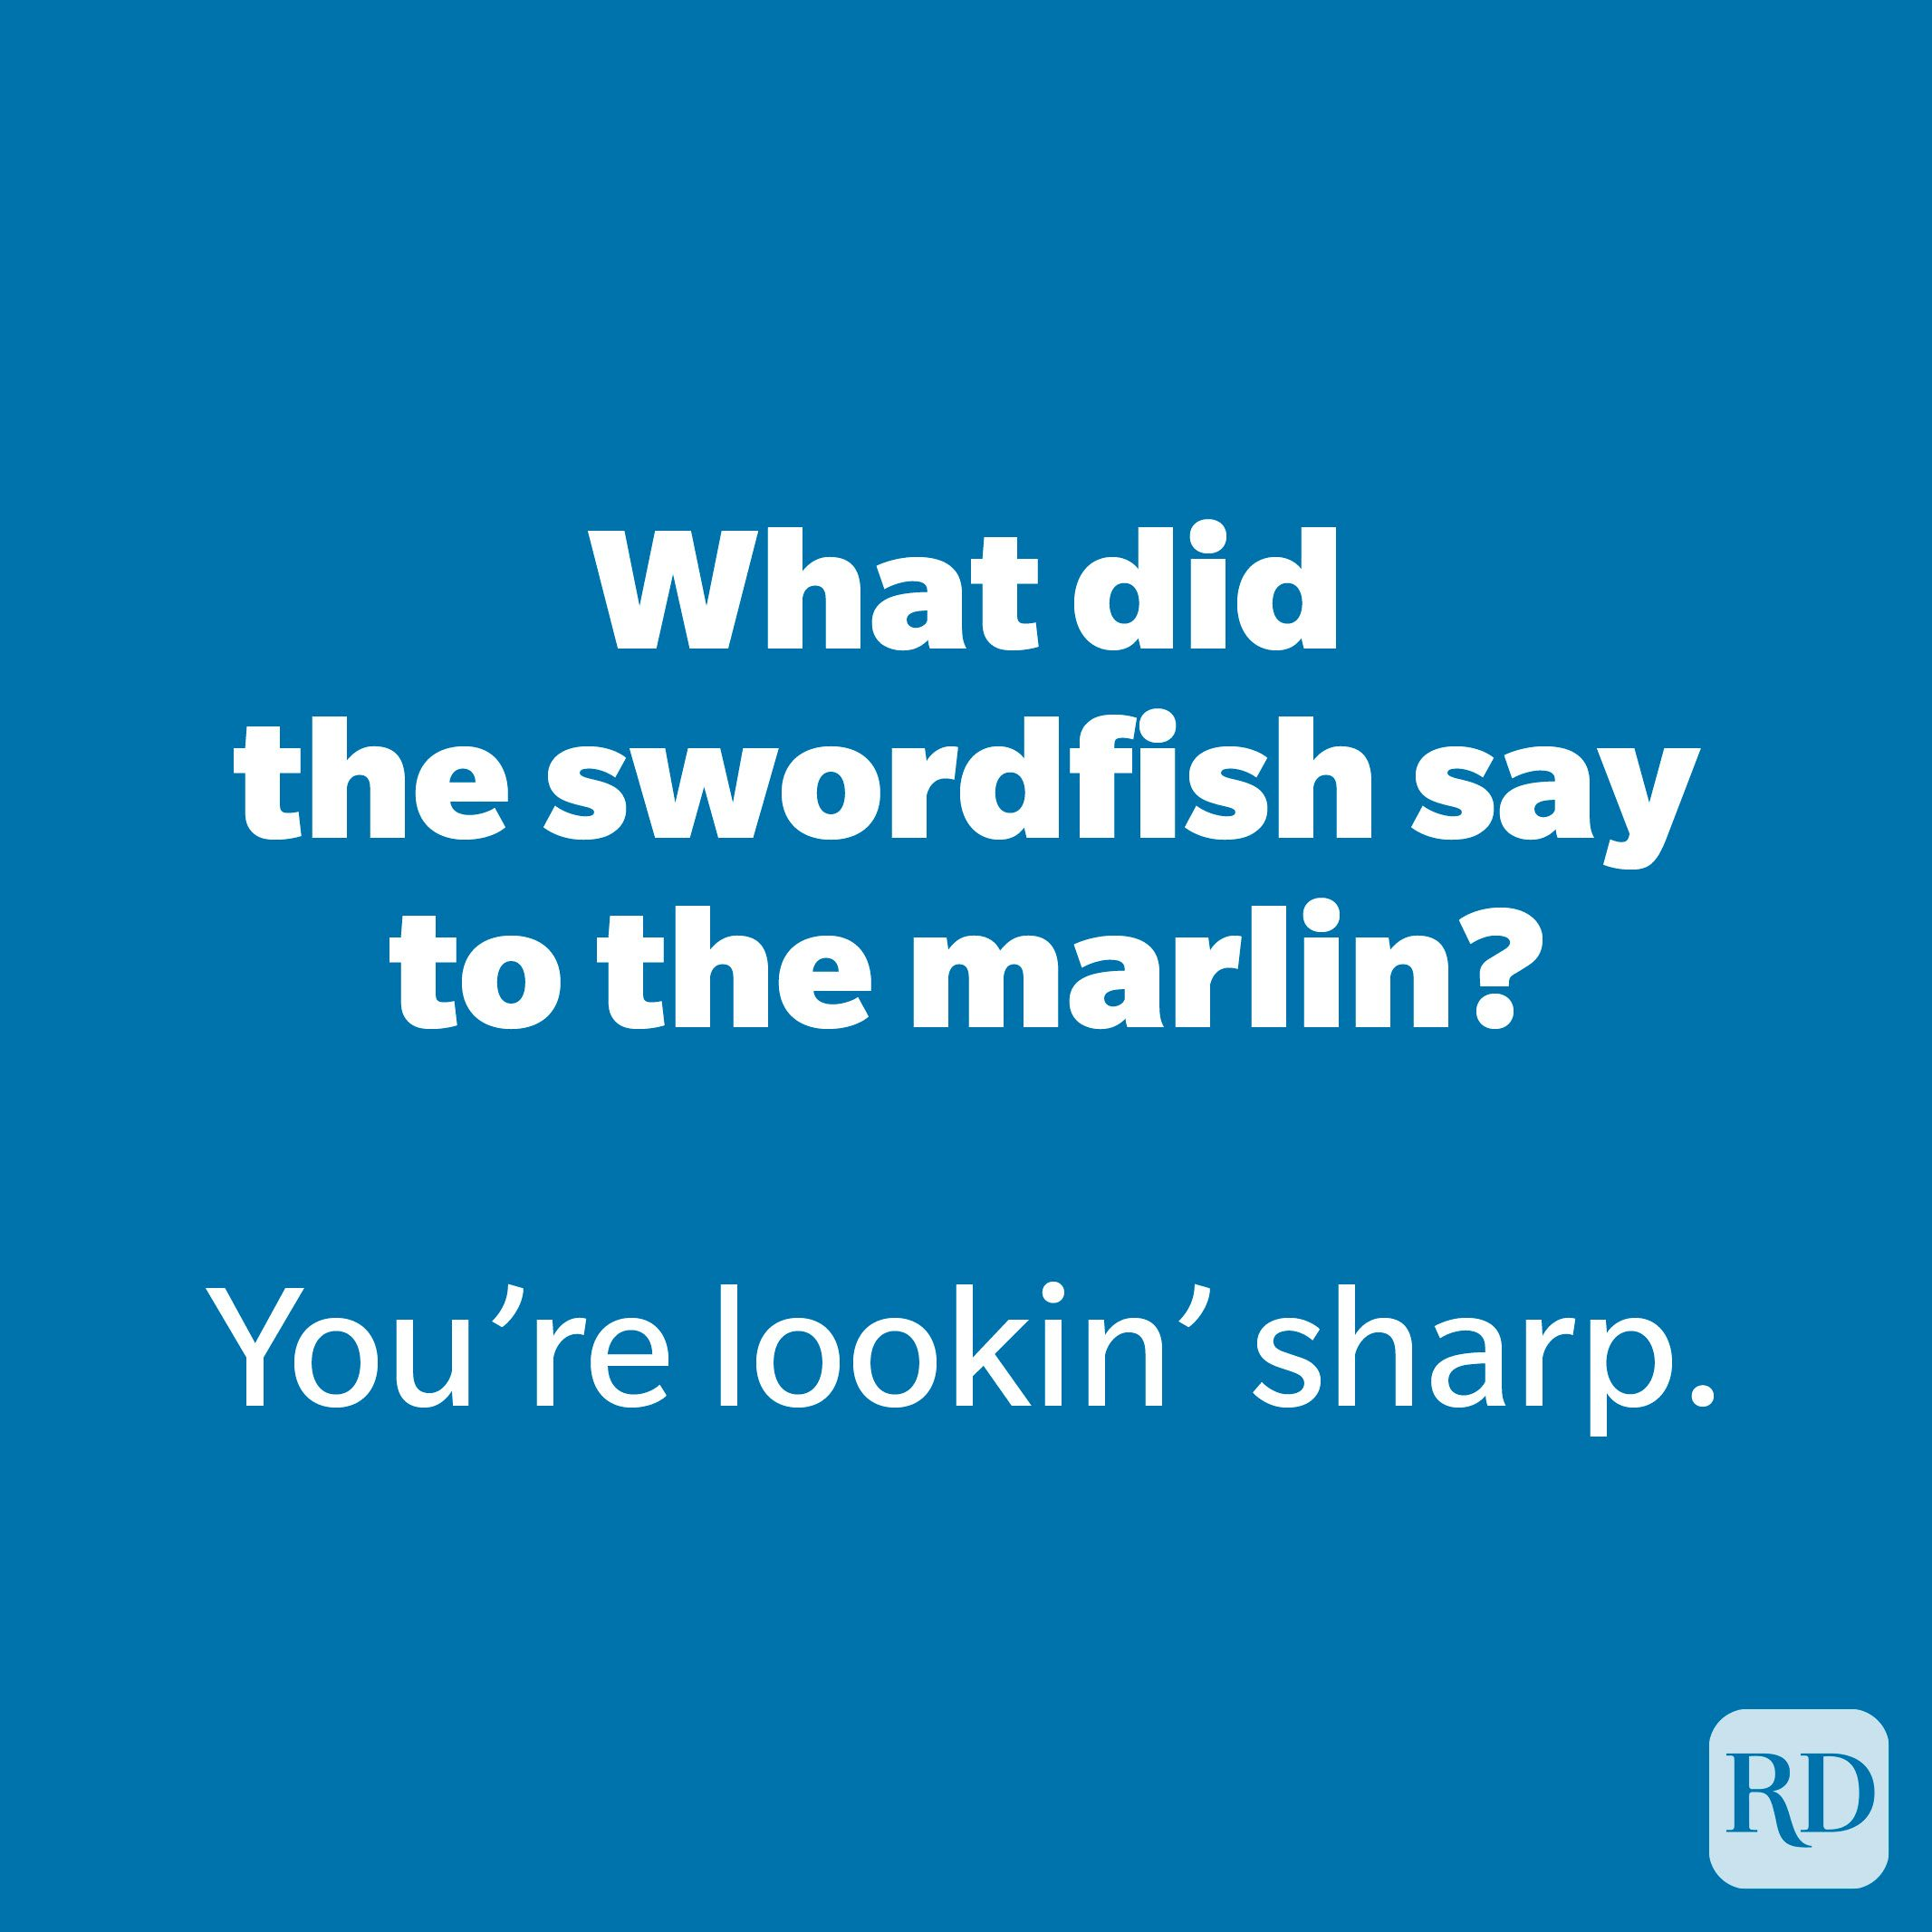 What did the swordfish say to the marlin?